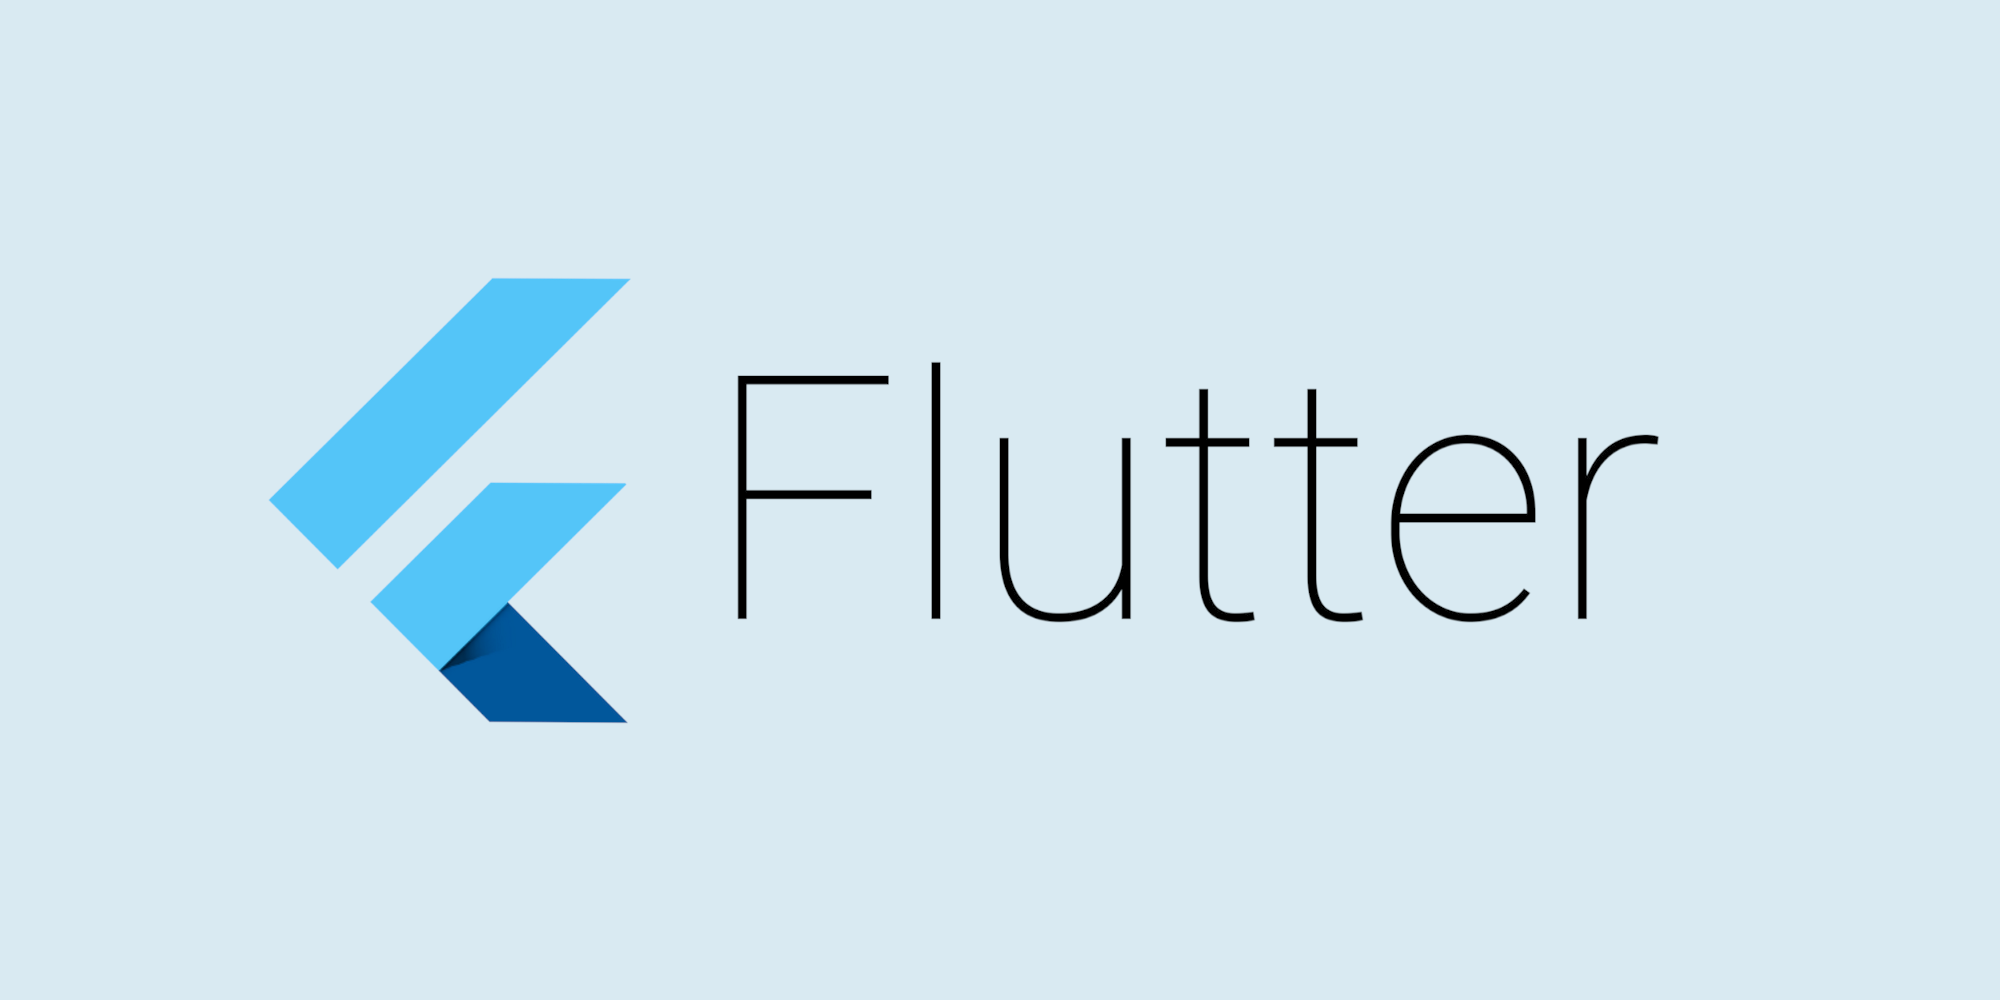 Google and Canonical partner to bring Linux apps support to Flutter - 9to5Google